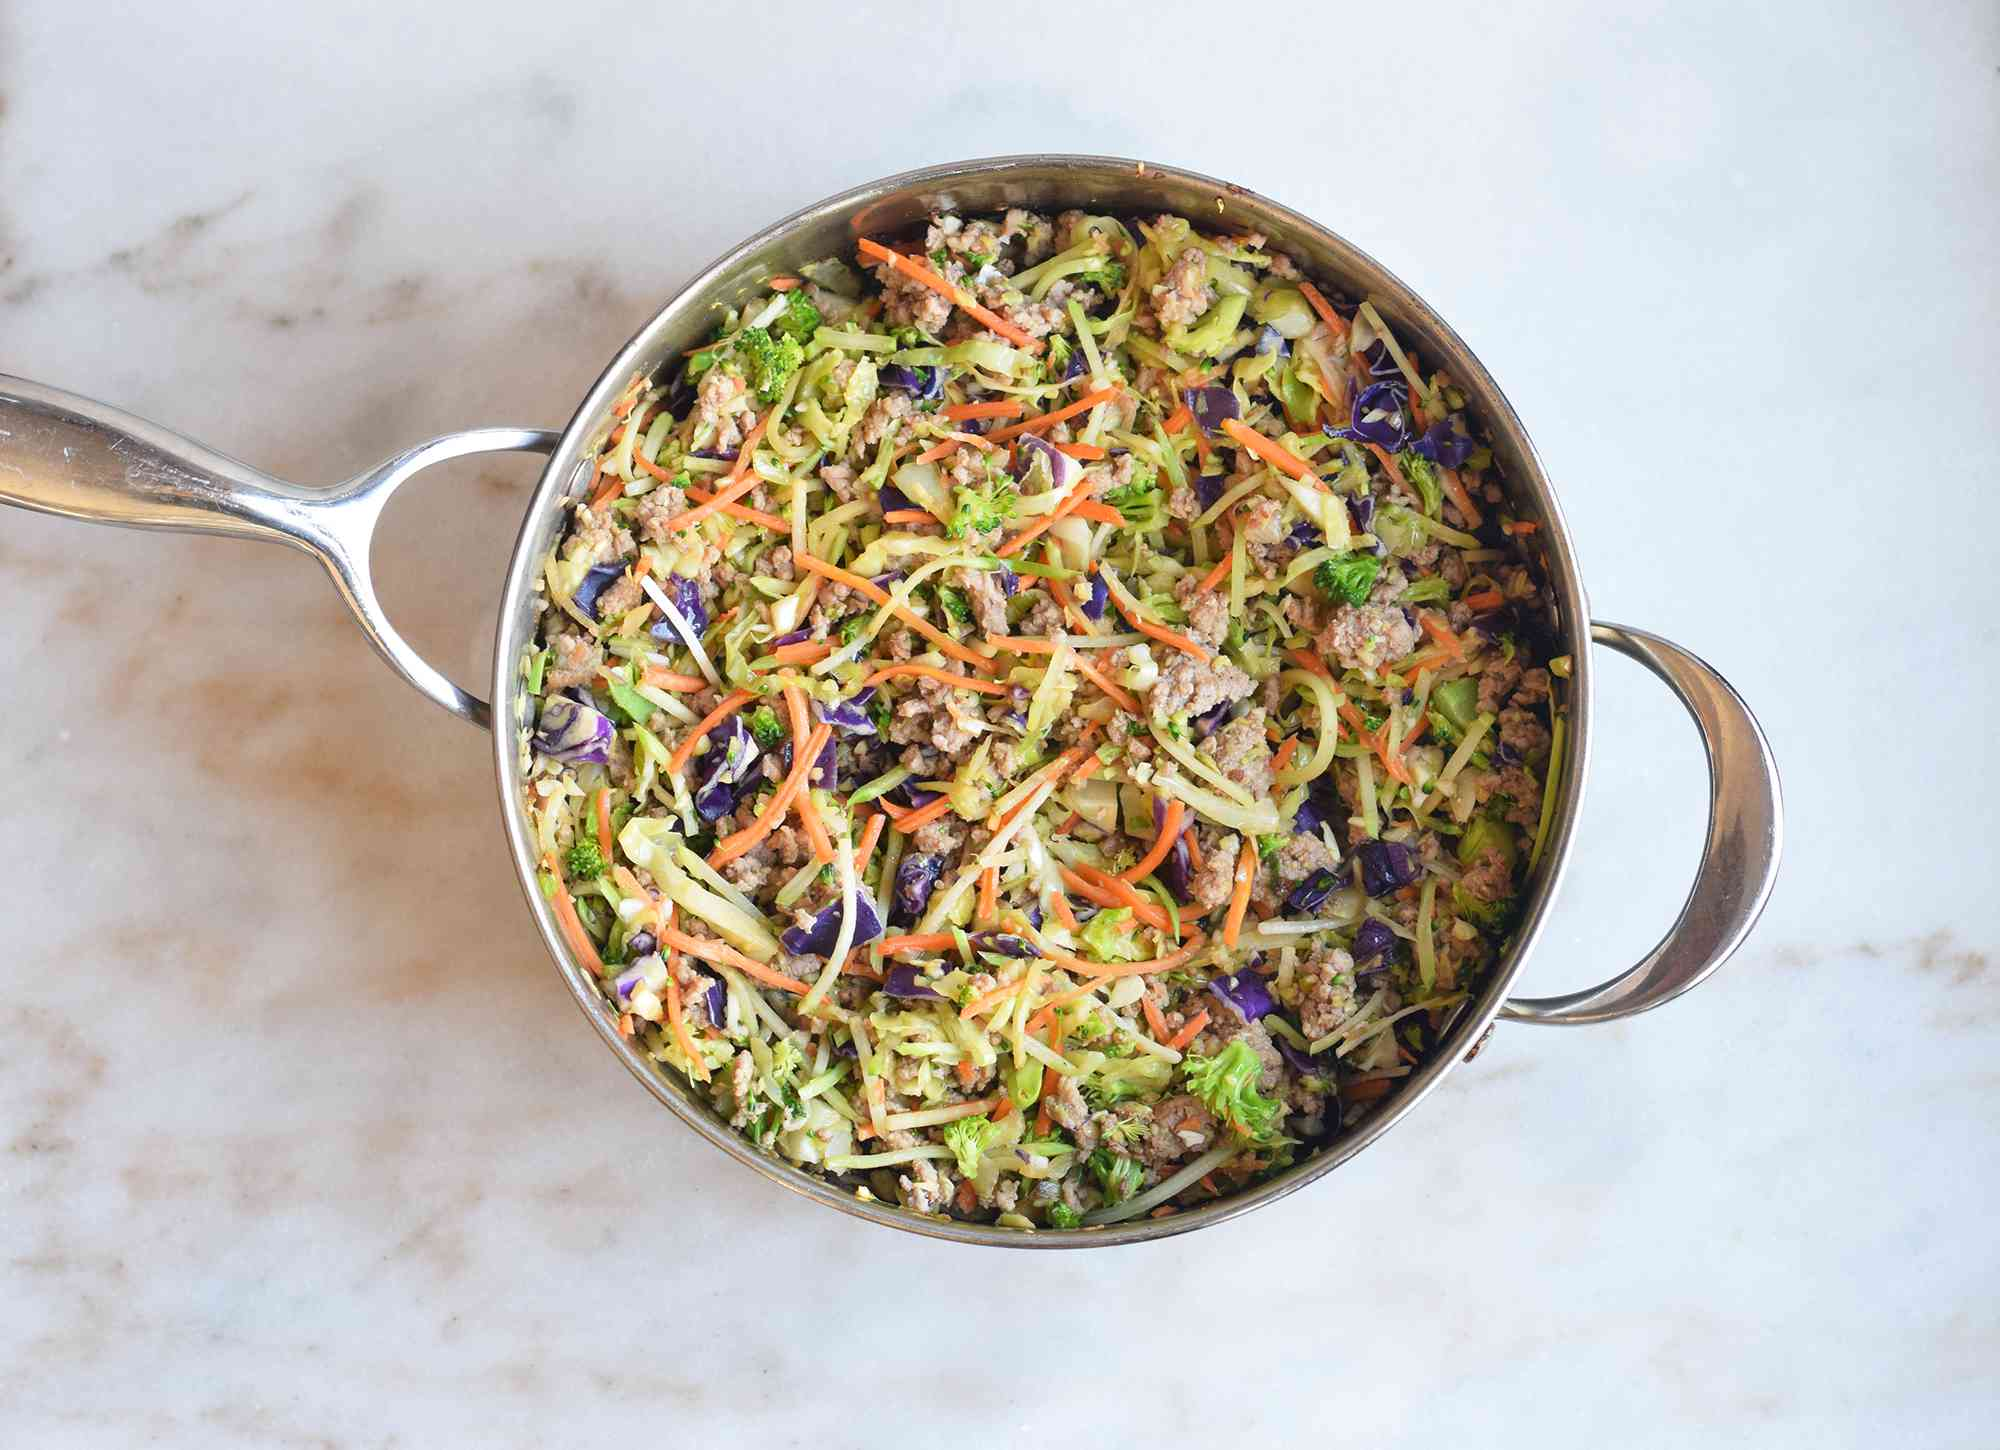 browned sausage and coleslaw mix in a saute pan